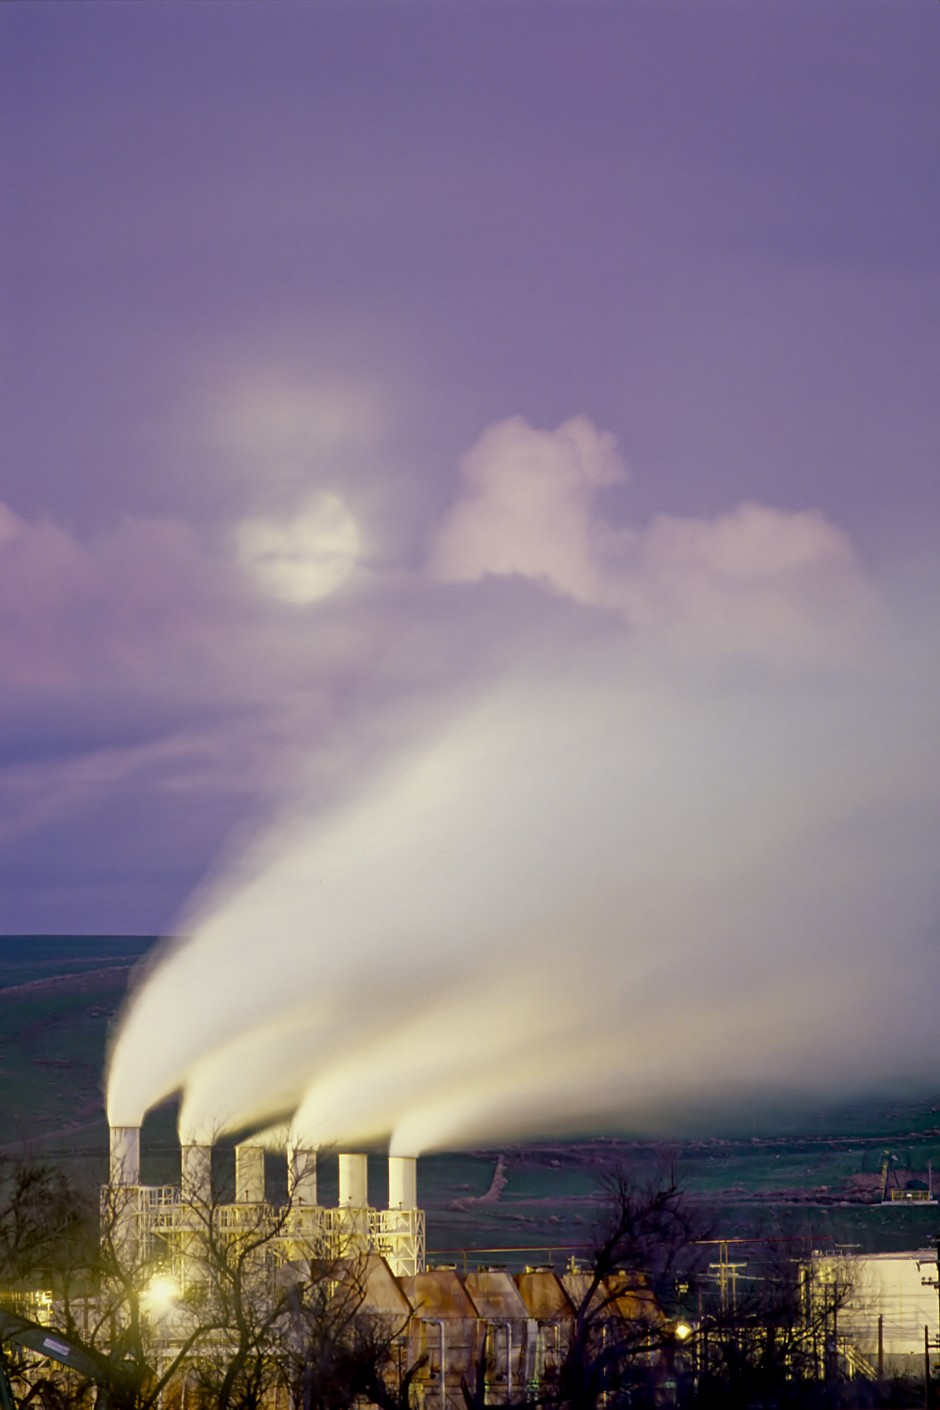 USA: California: Monterey County: Salinas Valley: Moonrise at dusk over a power plant's steaming stacks